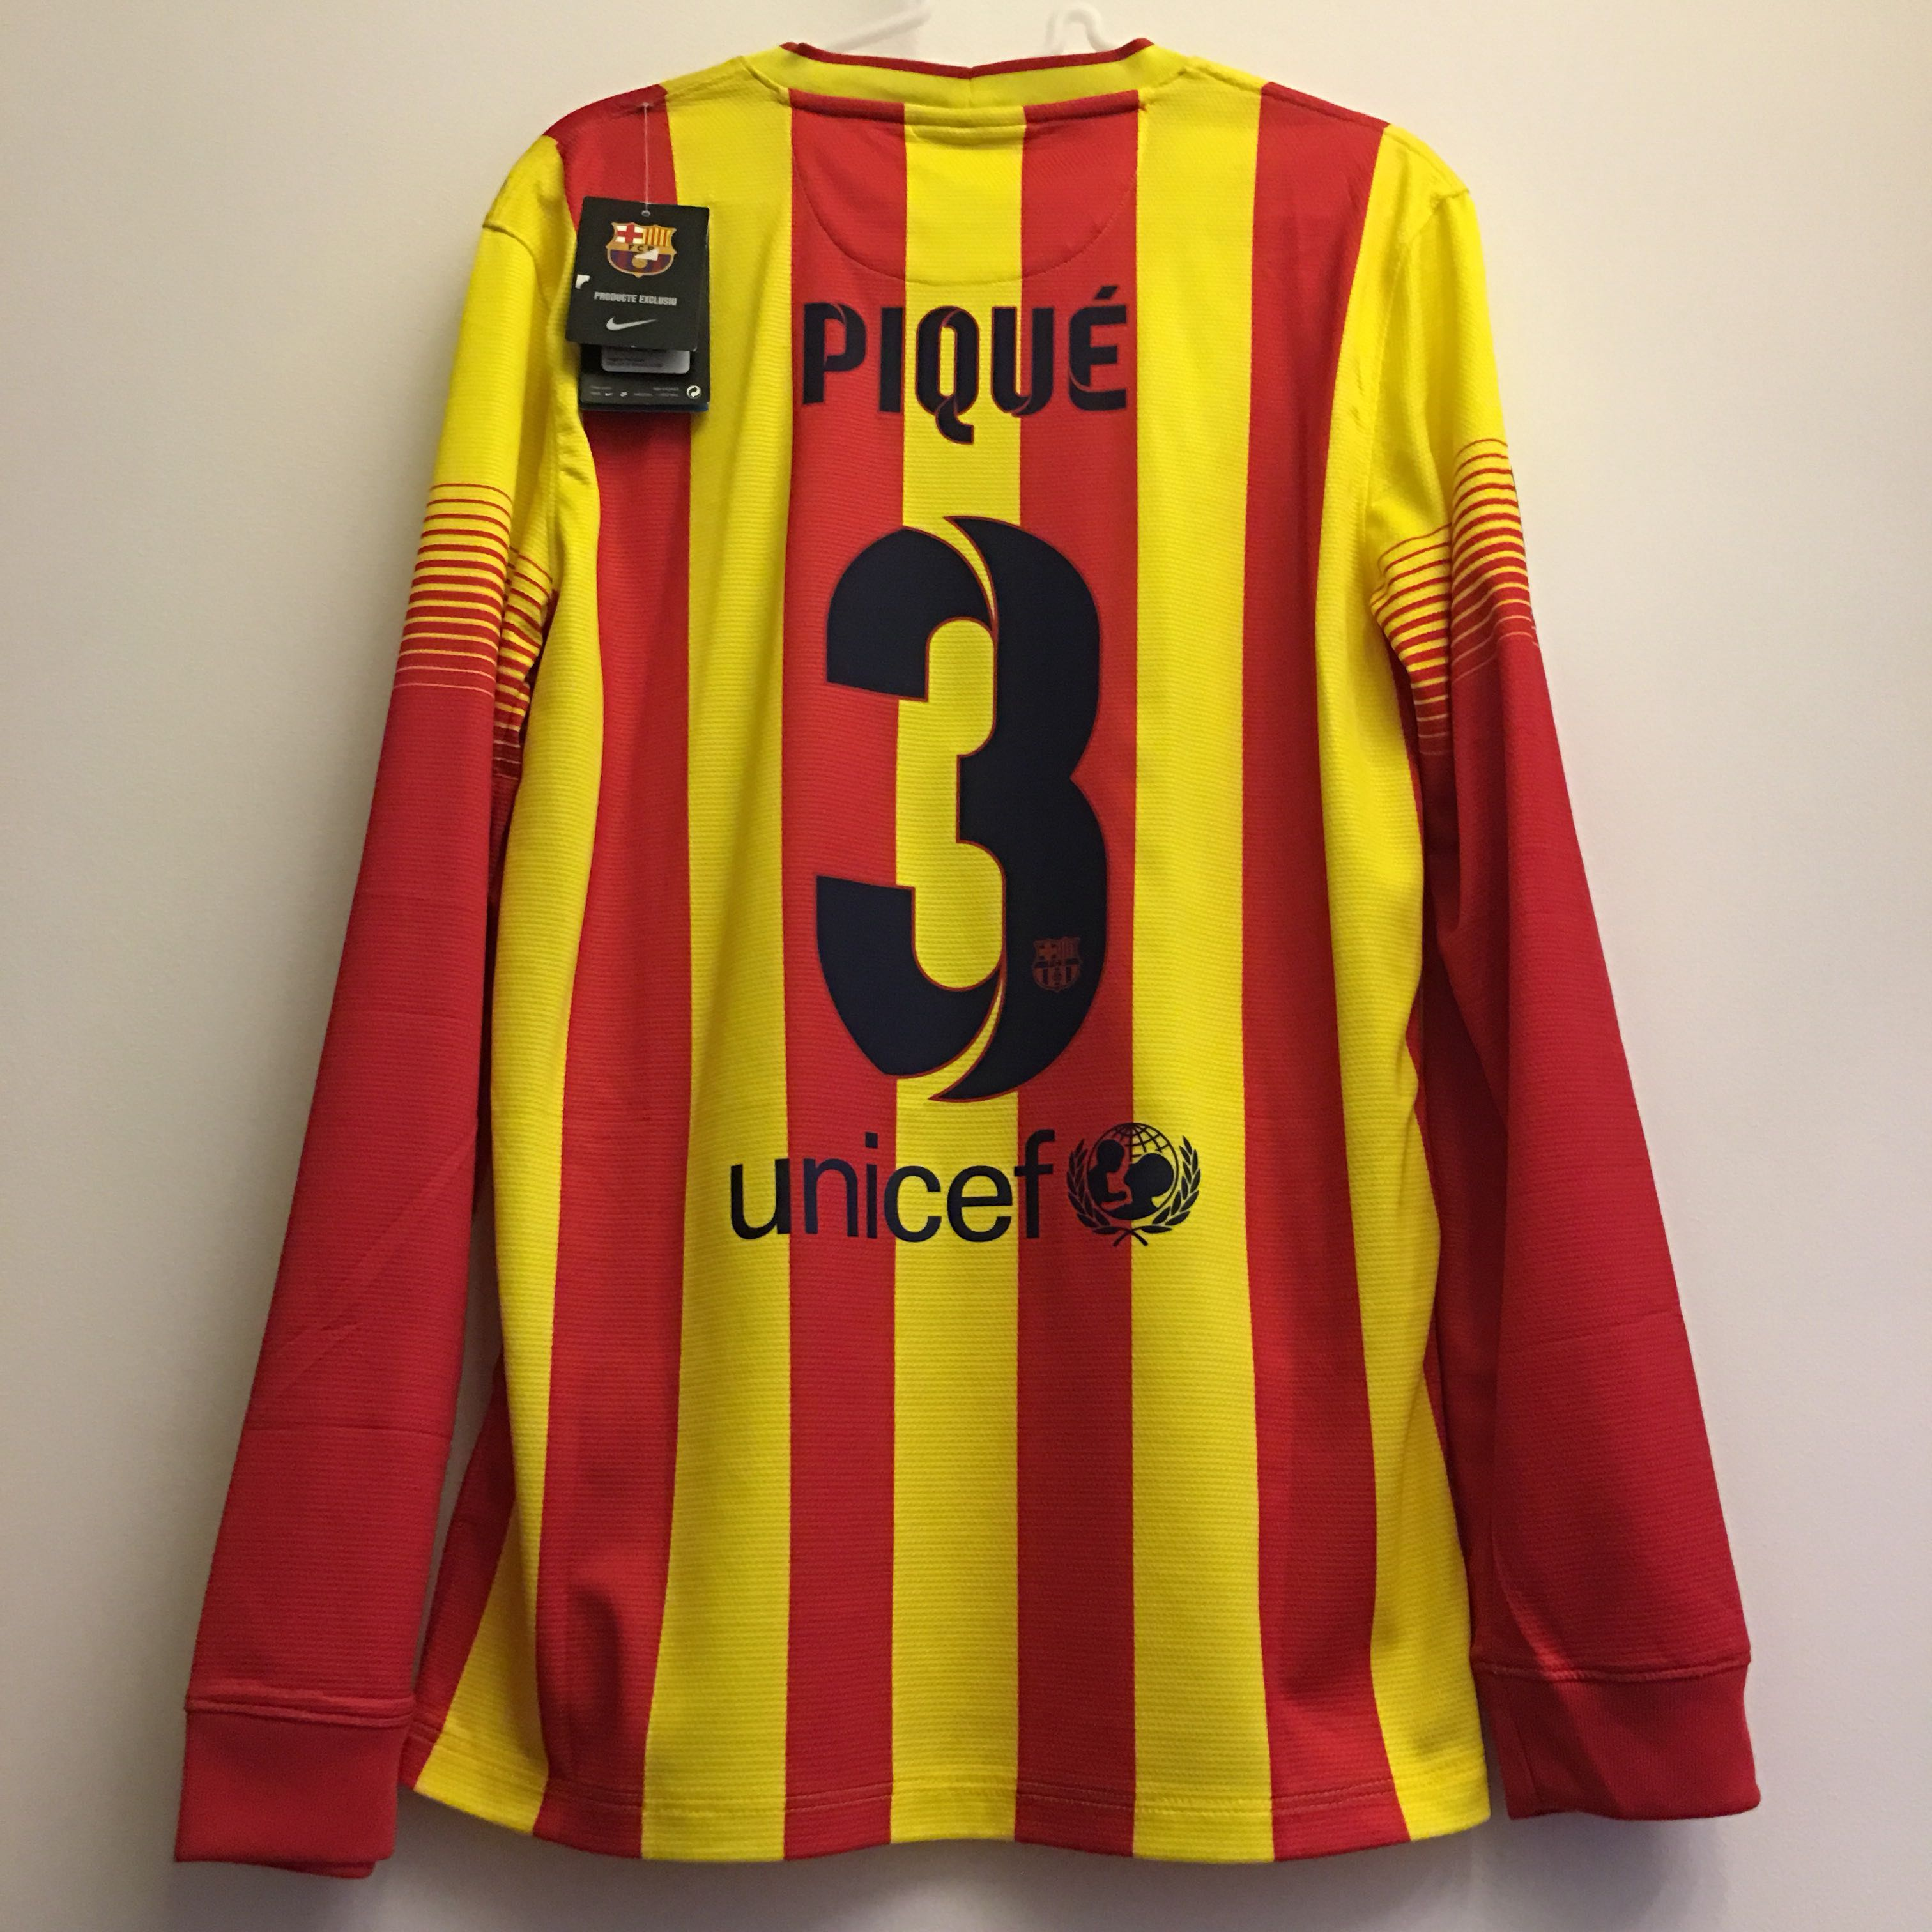 c24c56cf199 BNWT] Barcelona 2013/14 Away Jersey with 'Pique' Nameset, Sports ...